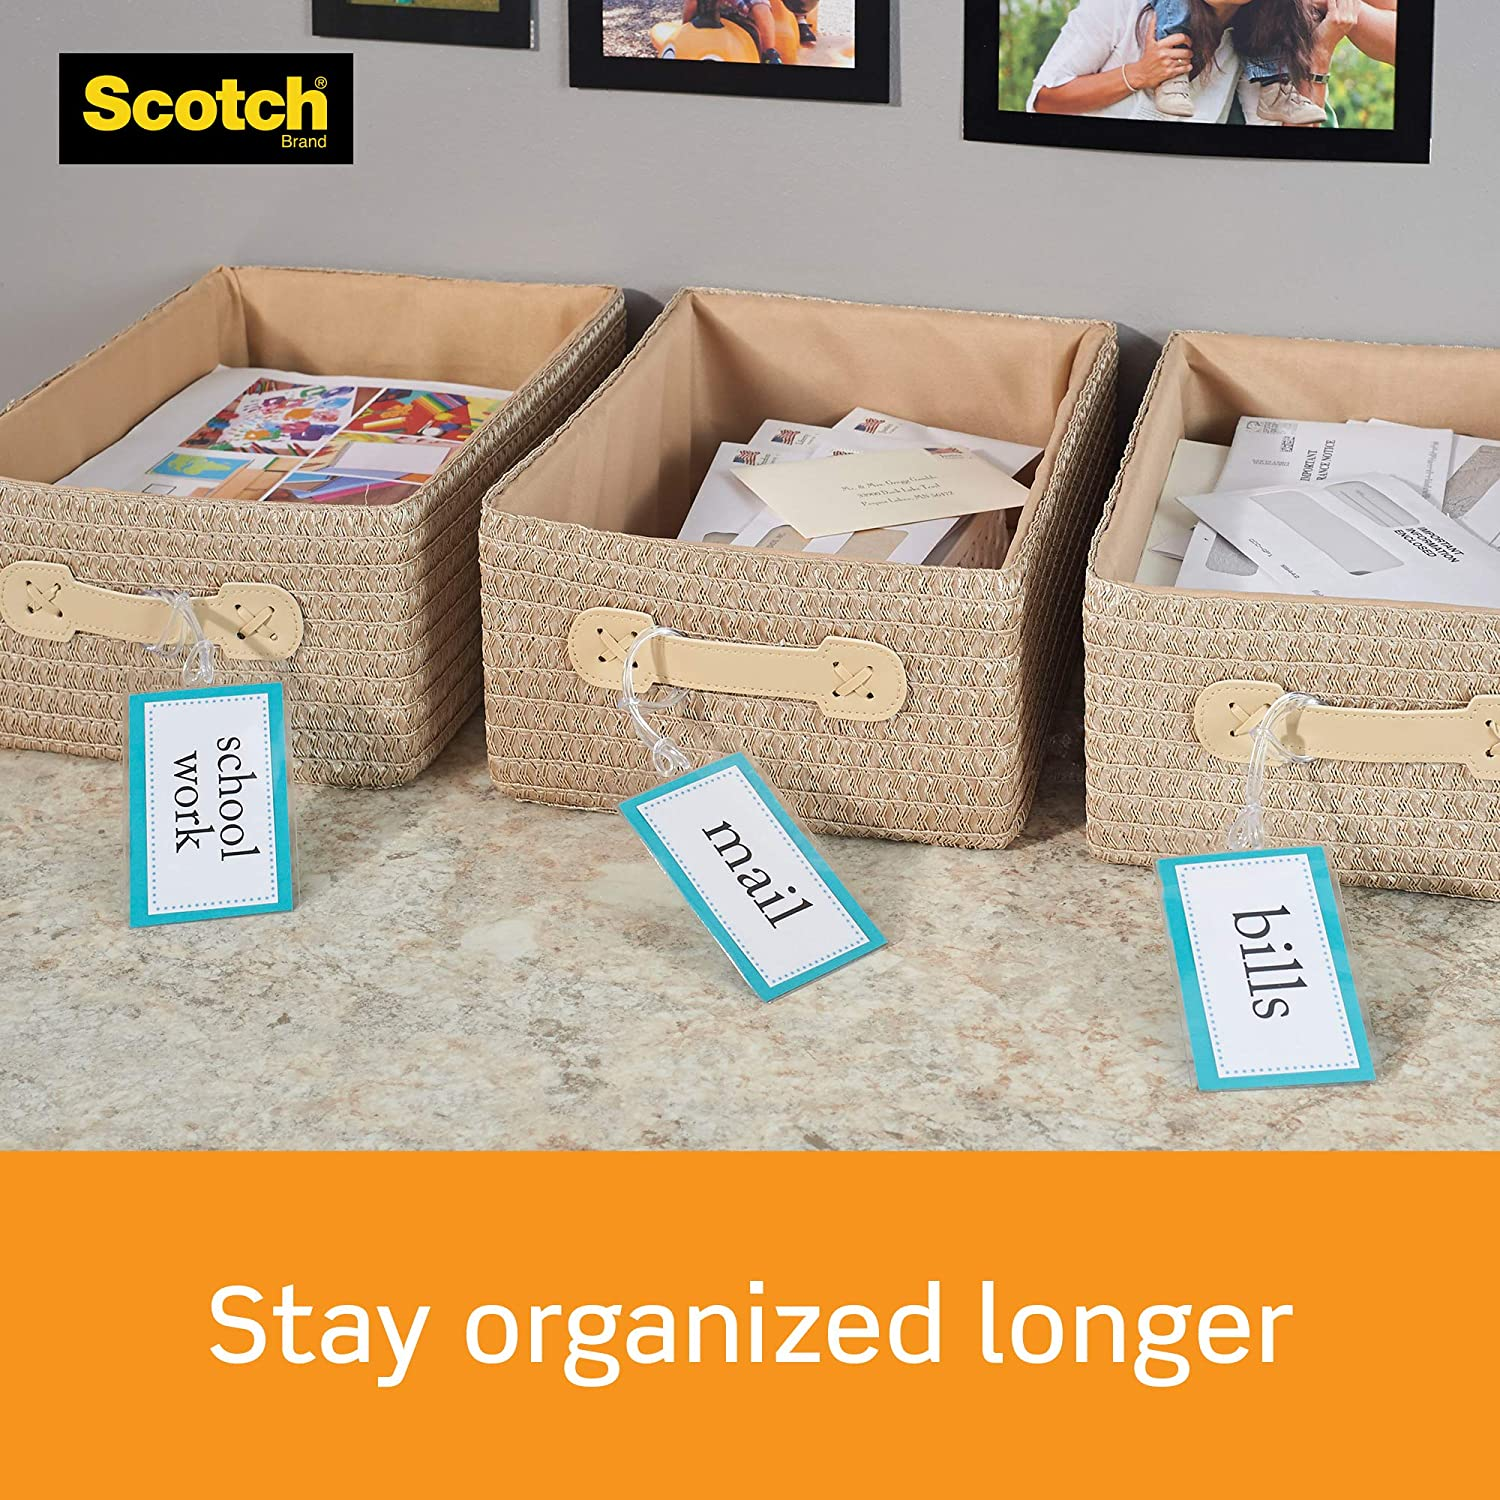 Pack 1 Scotch Brand Thermal Laminating Pouches 100-Pack 8.9 x 11.4 inches Clear, Letter Size Sheets